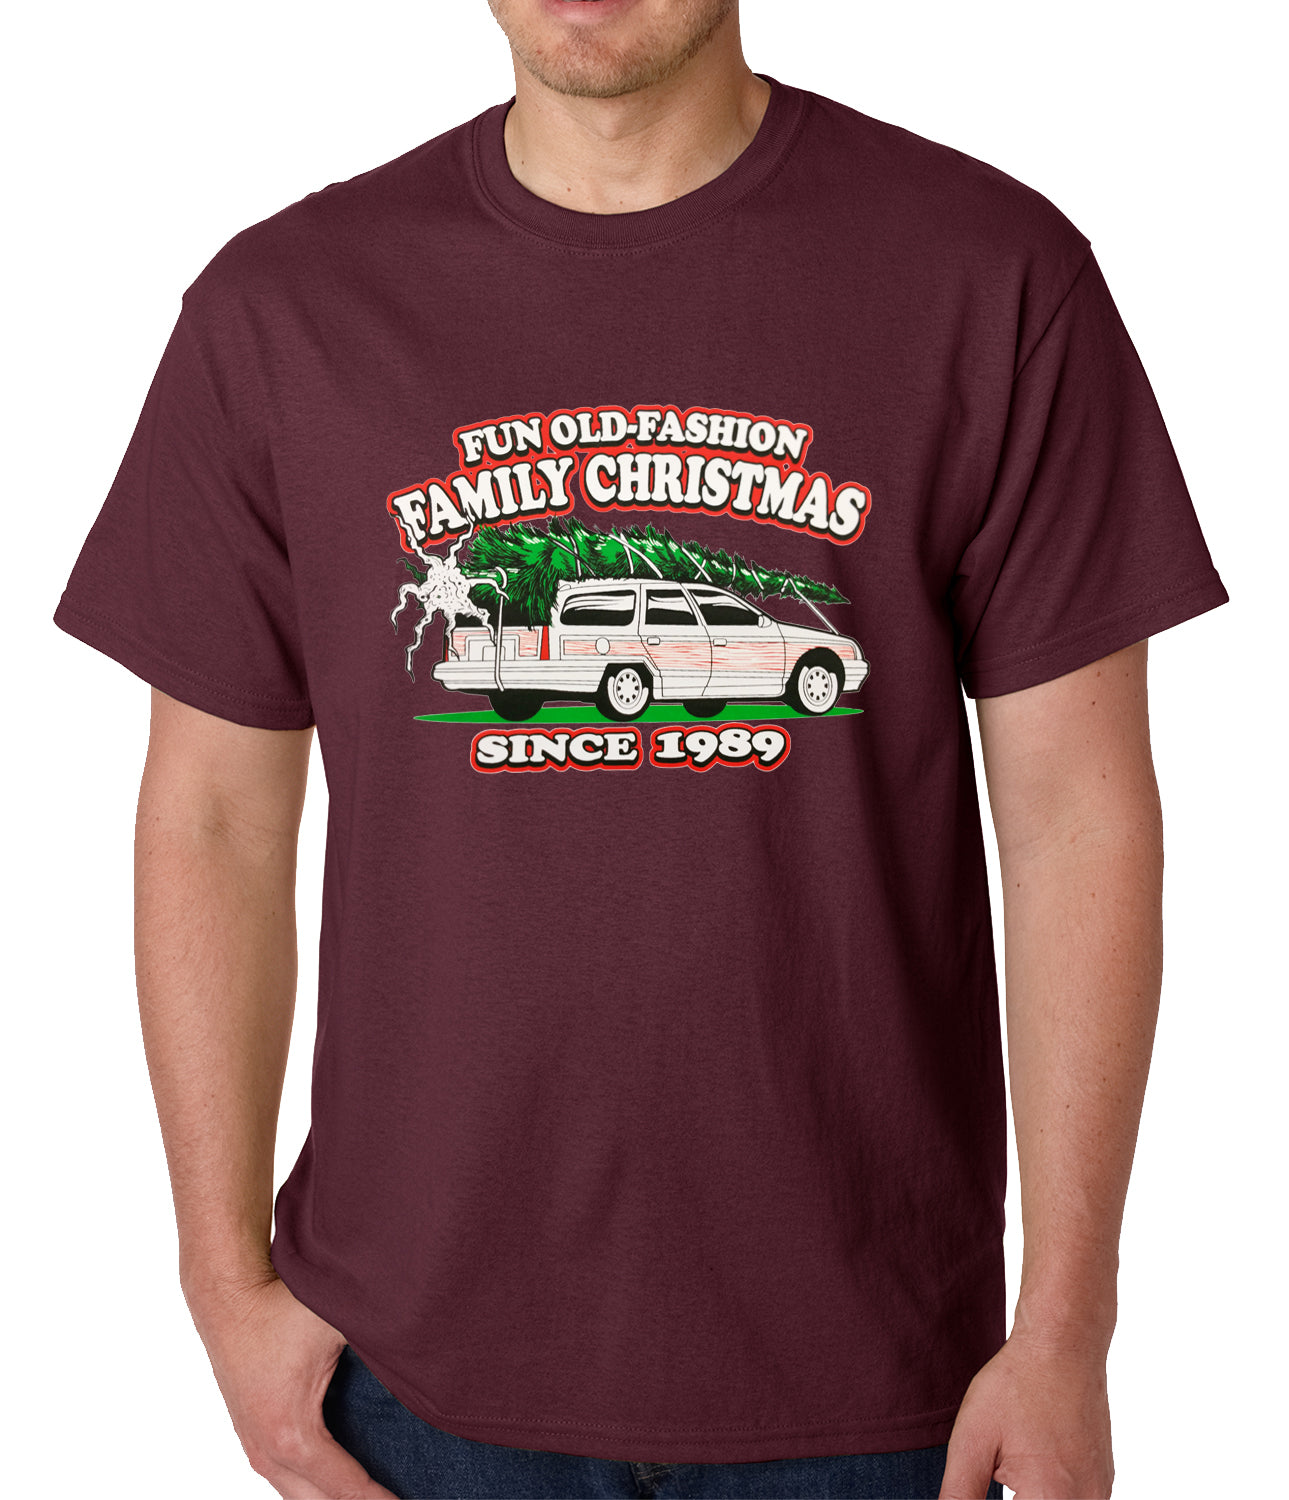 Fun Old-Fashioned Family Christmas Since 1989 Mens T-shirt